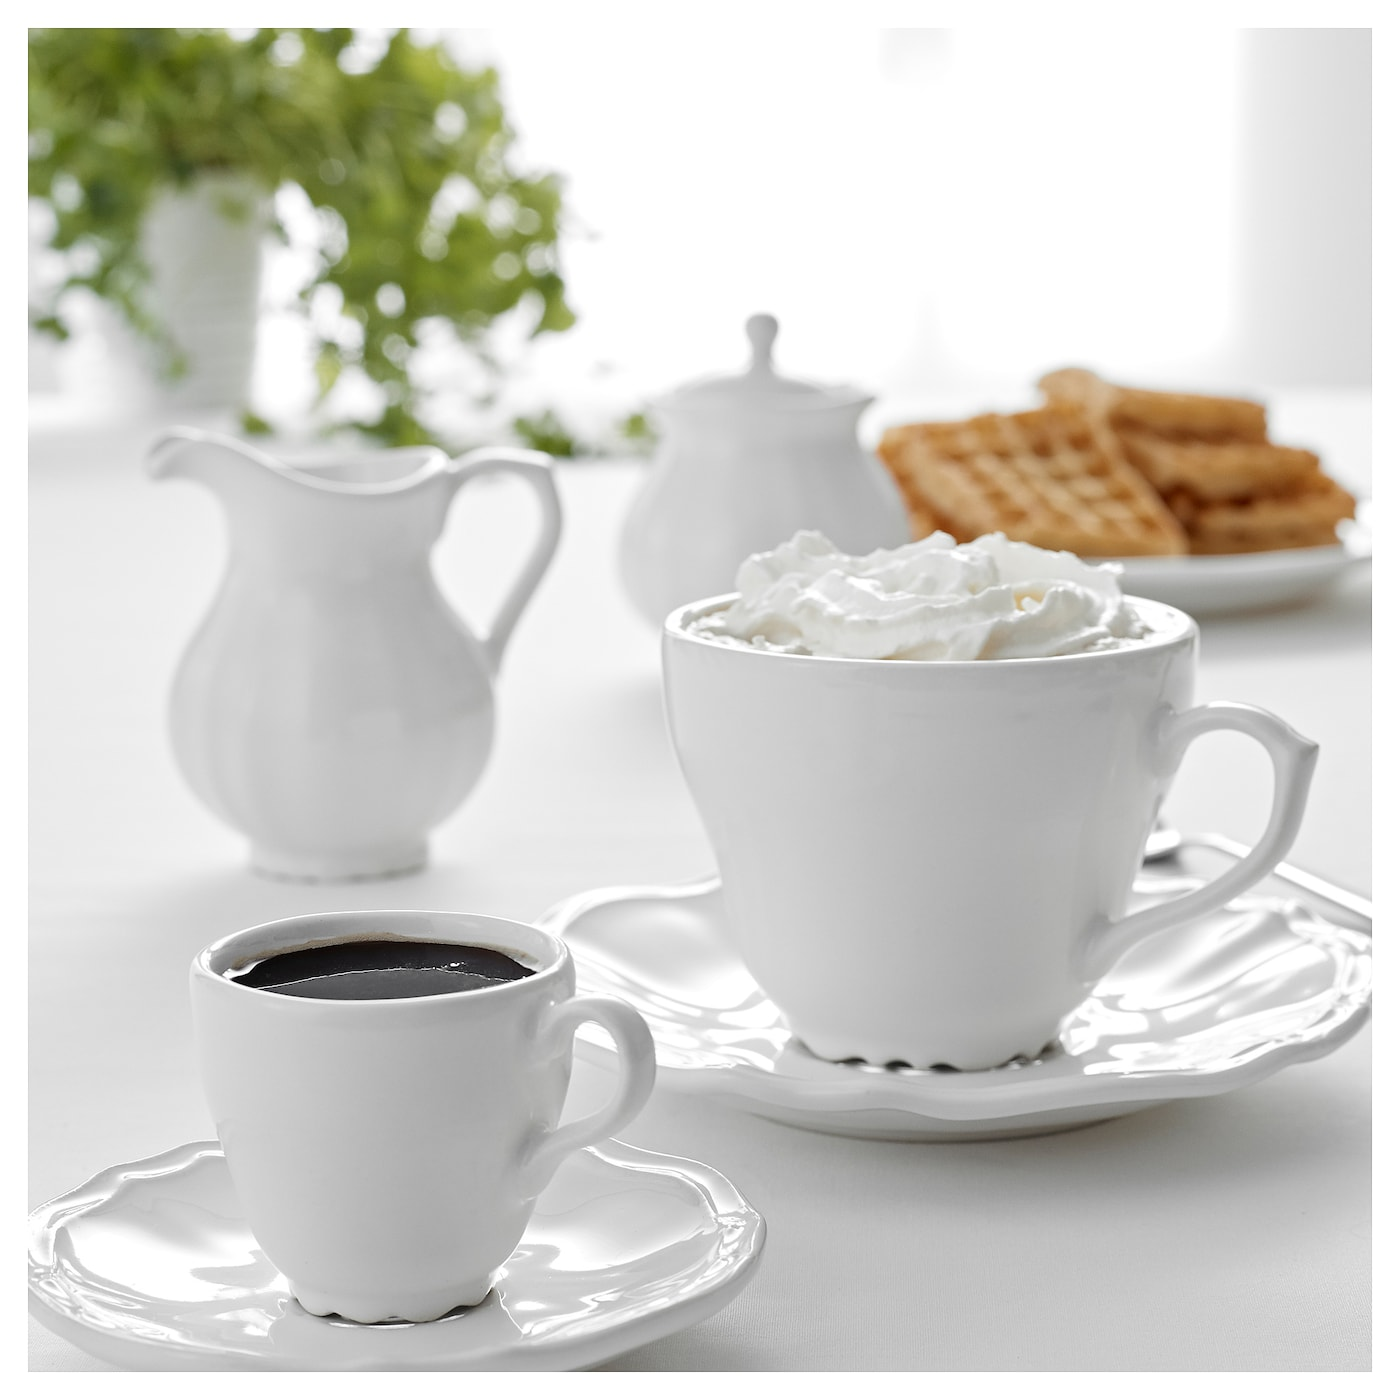 arv tasse caf et soucoupe blanc 20 cl ikea. Black Bedroom Furniture Sets. Home Design Ideas